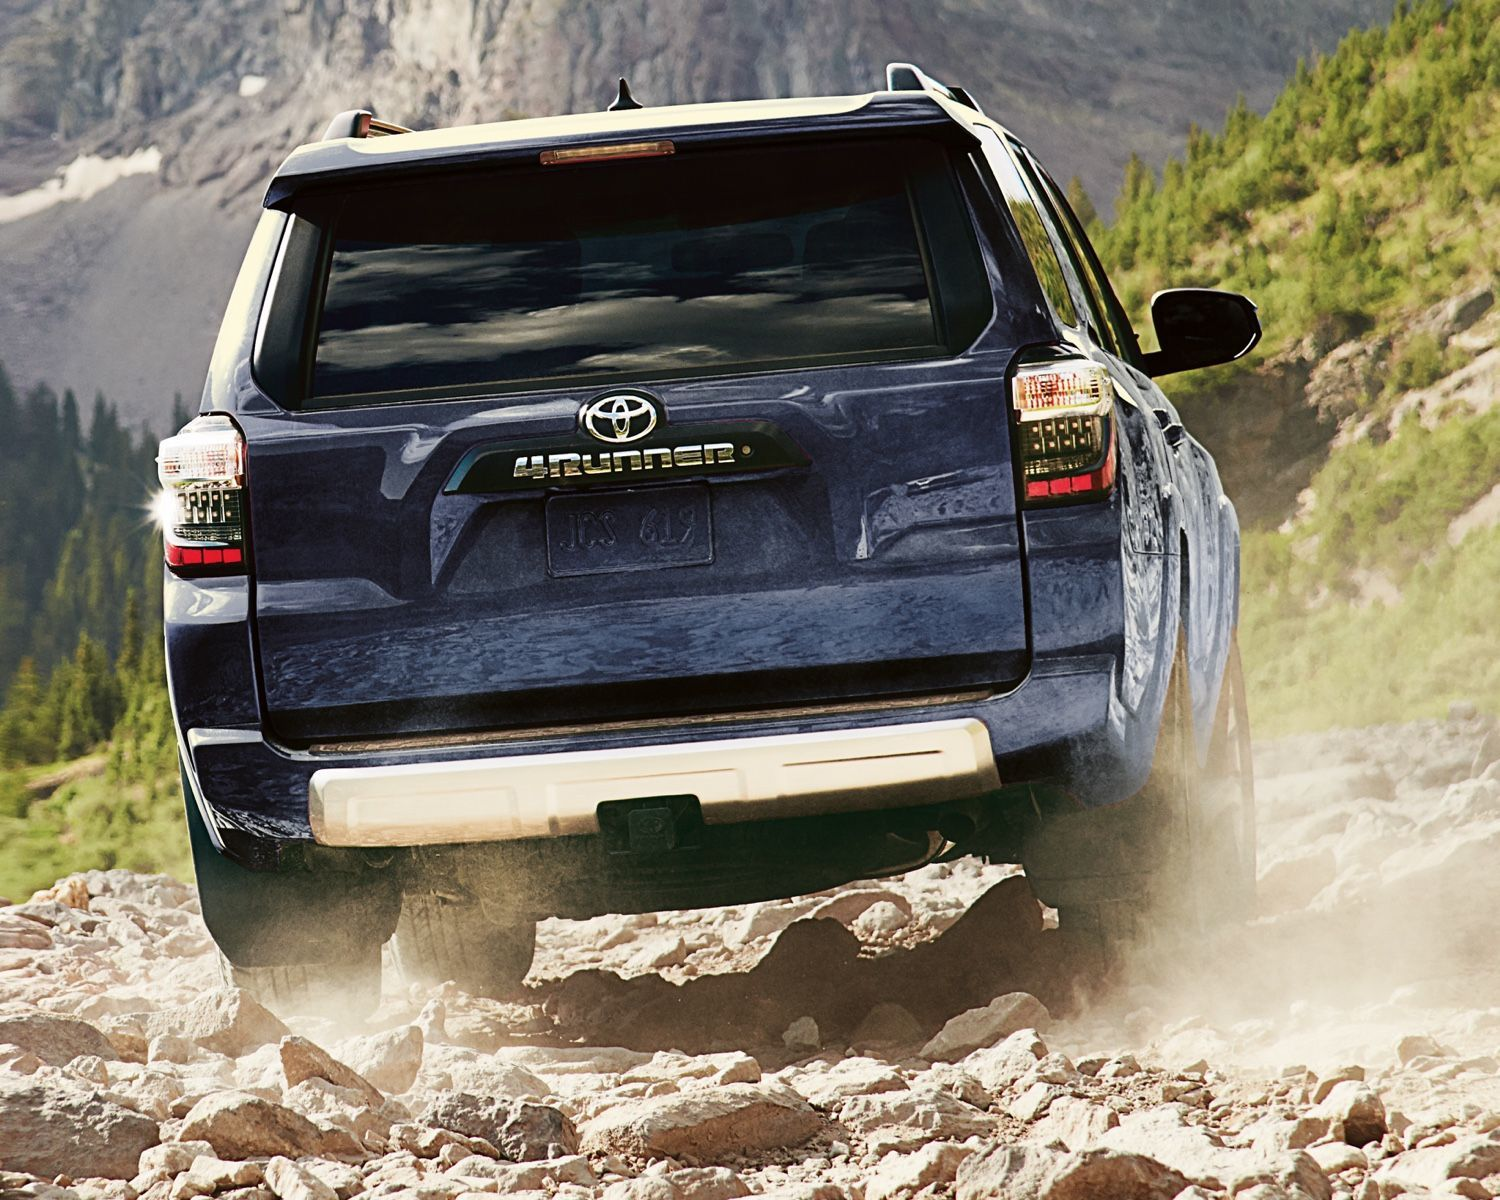 4Runner TRD Off-Road shown in Nautical Blue Metallic